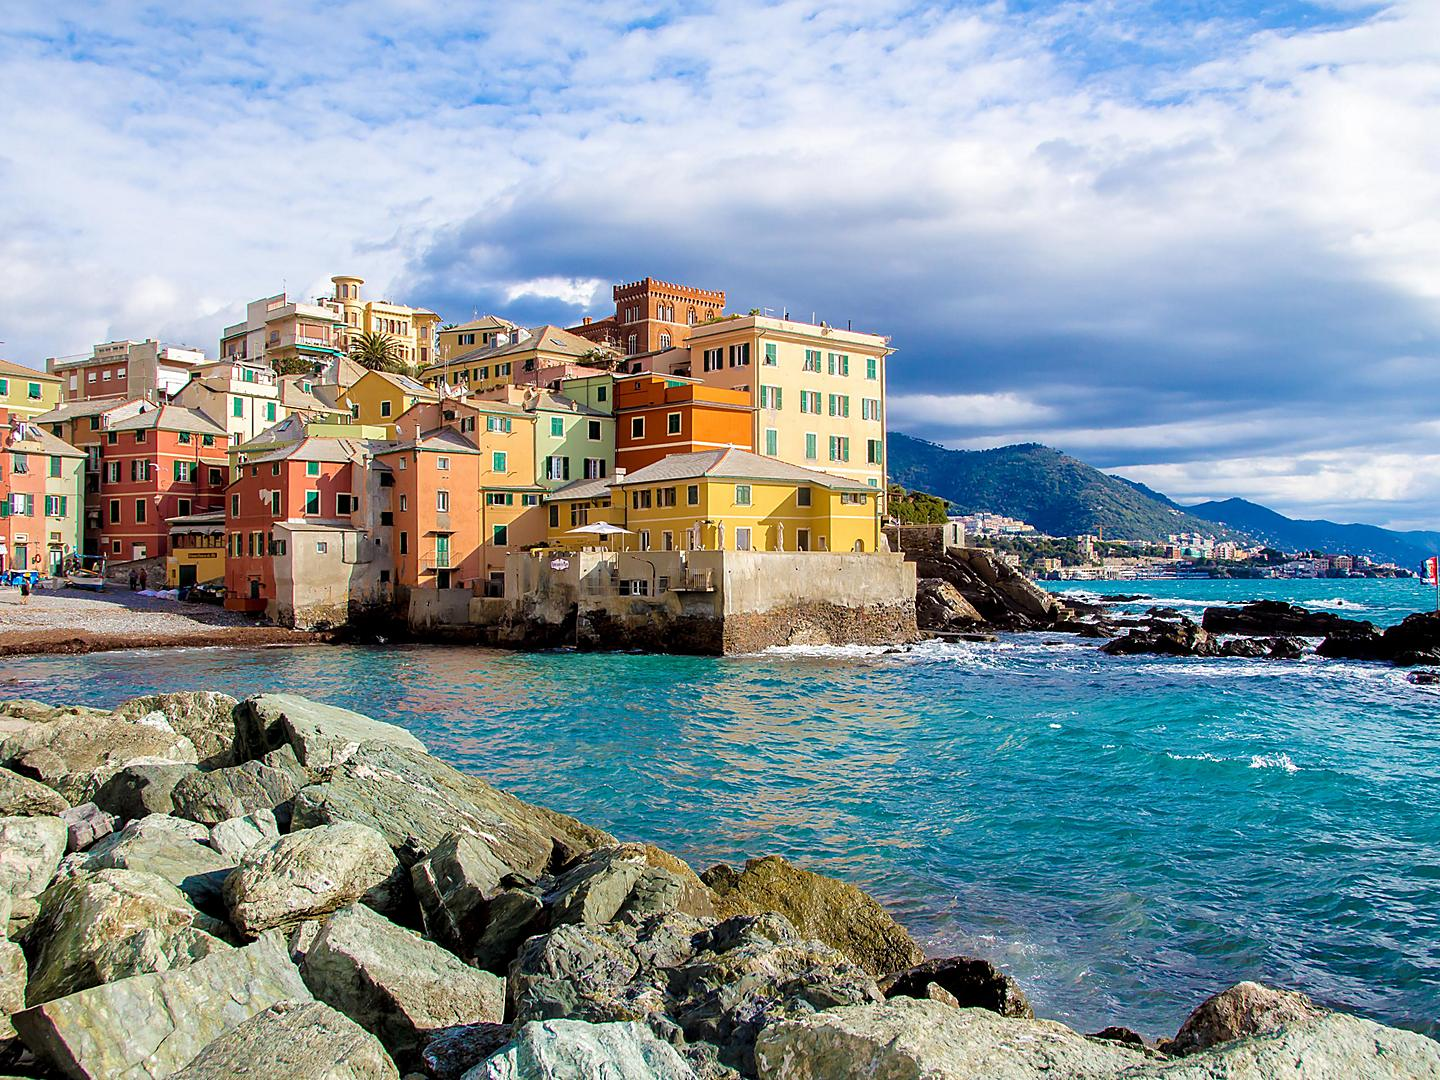 Genoa, Italy, Boccadasse district